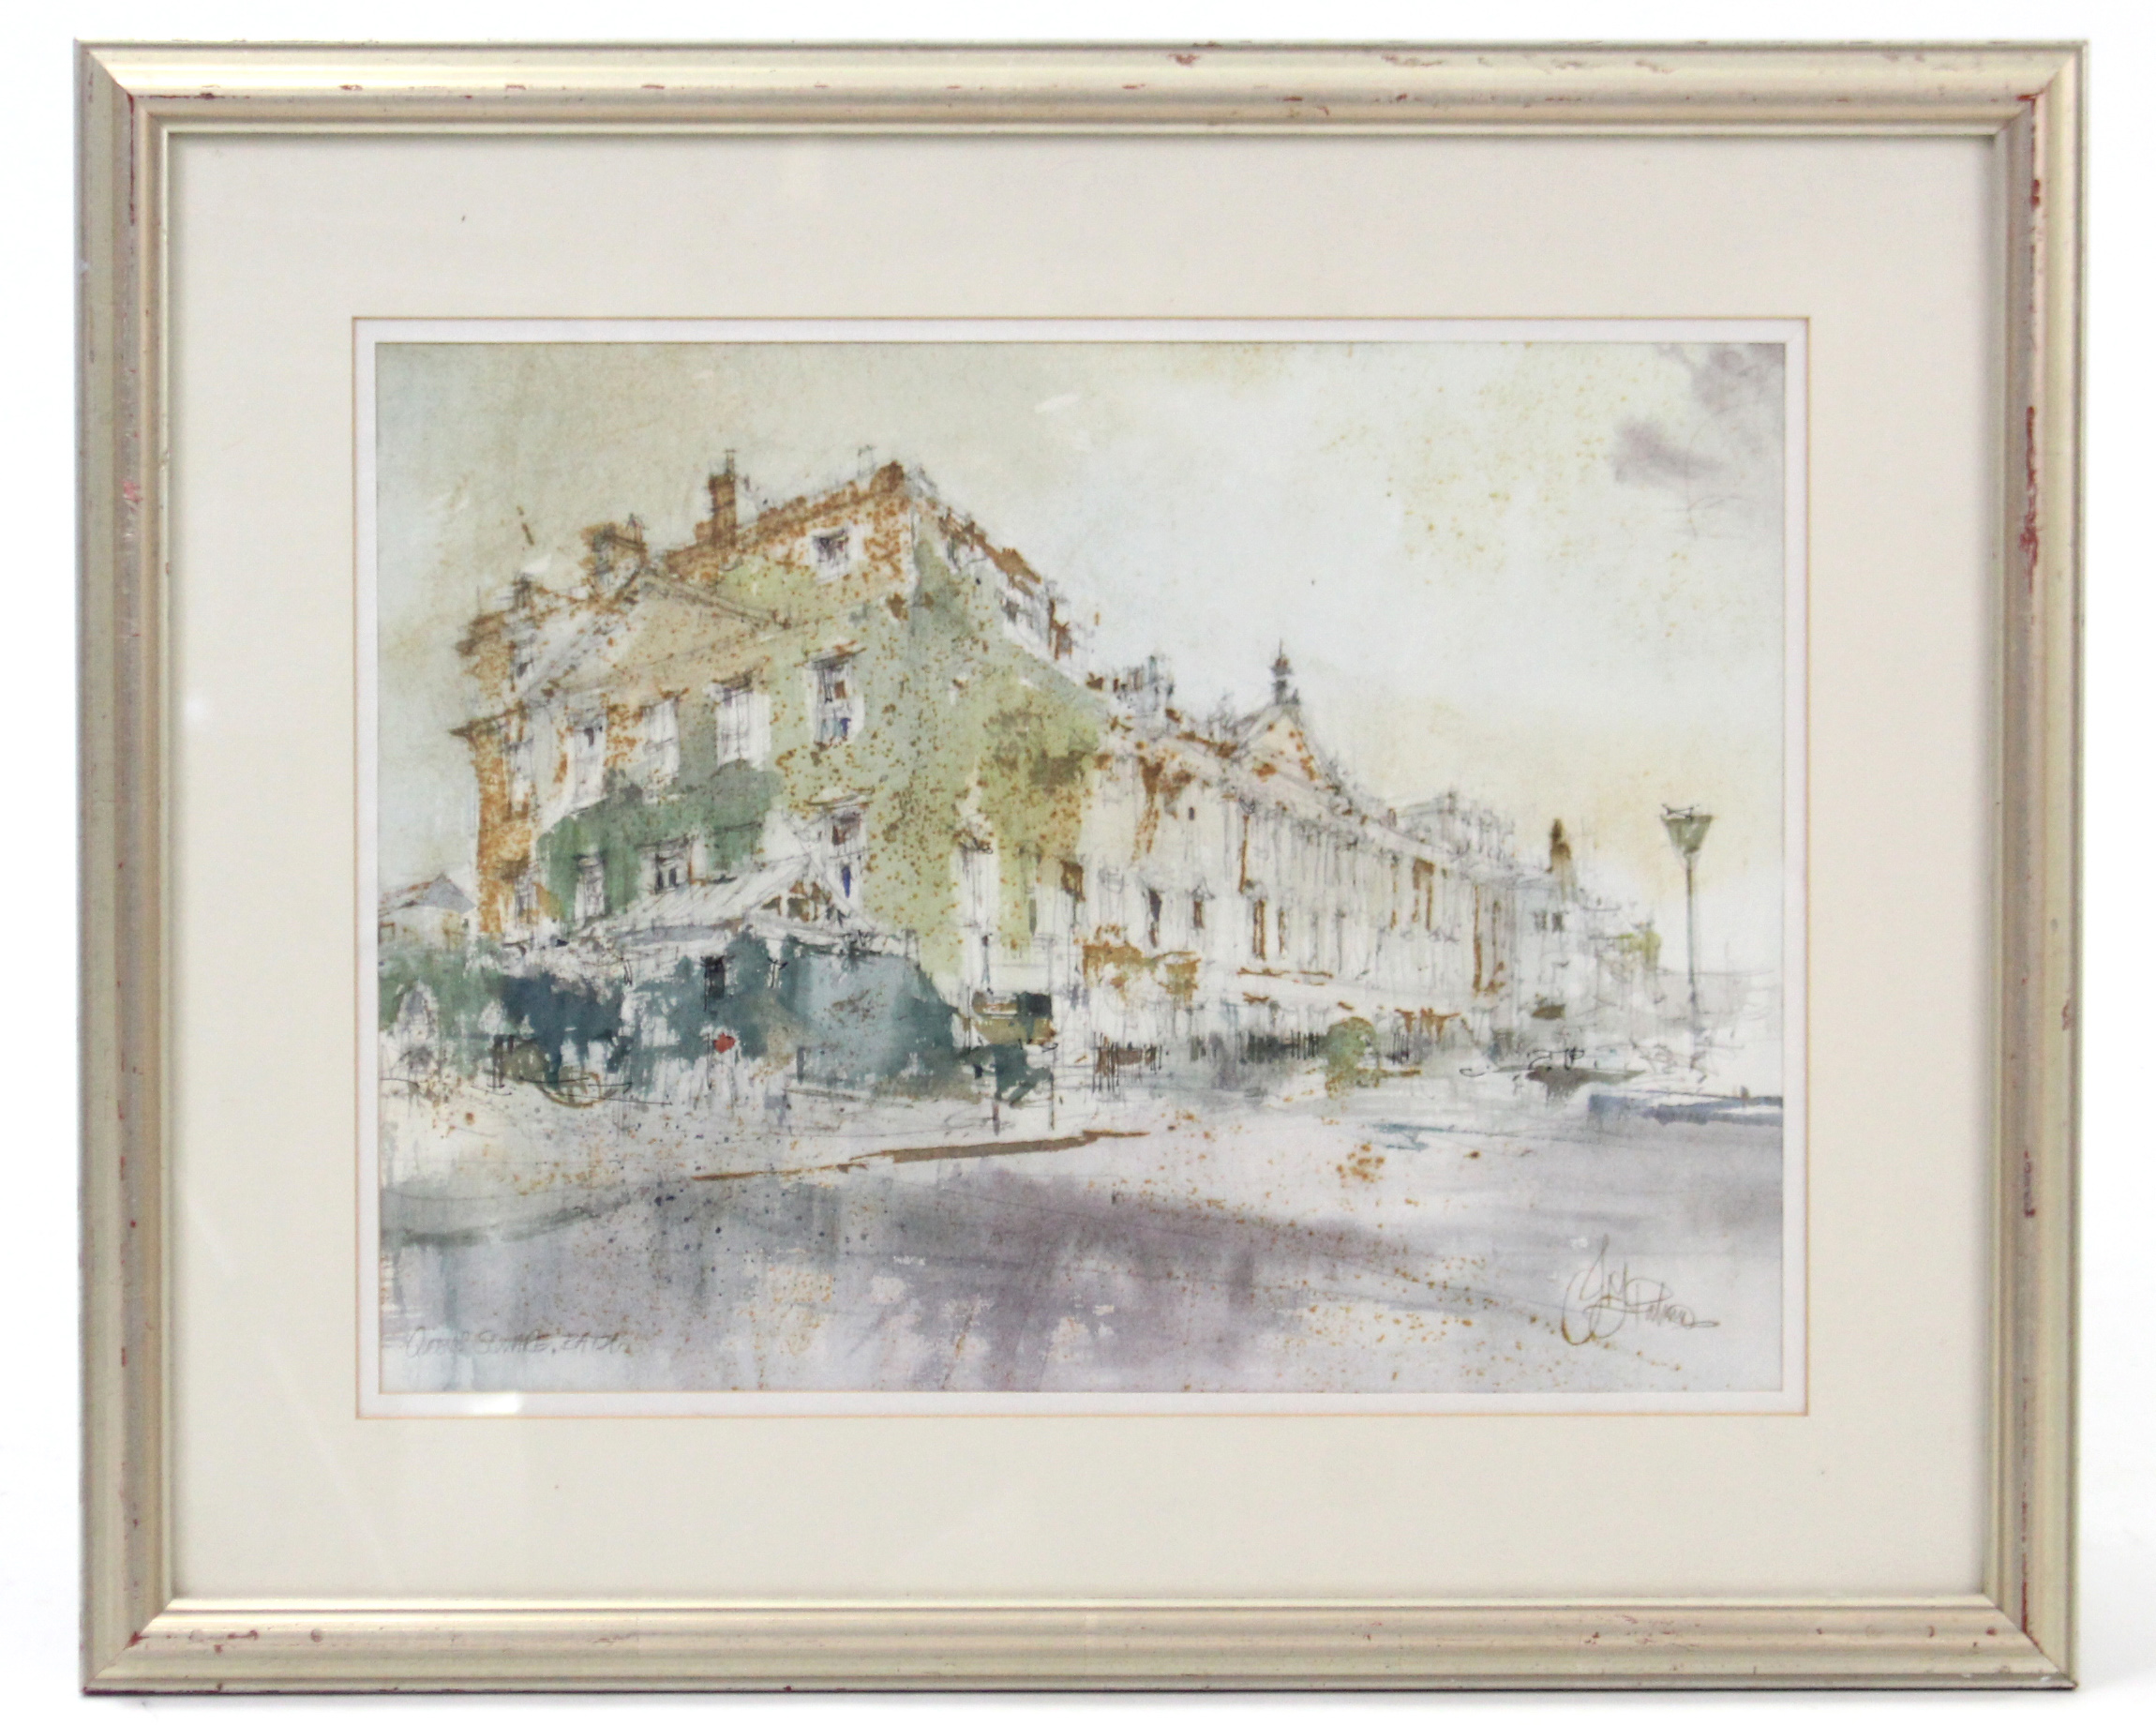 Lot 170 - JOHN FREDERICK PALMER (b. 1939, Bristol Savages). A view of the North side of Queen Square, Bath;